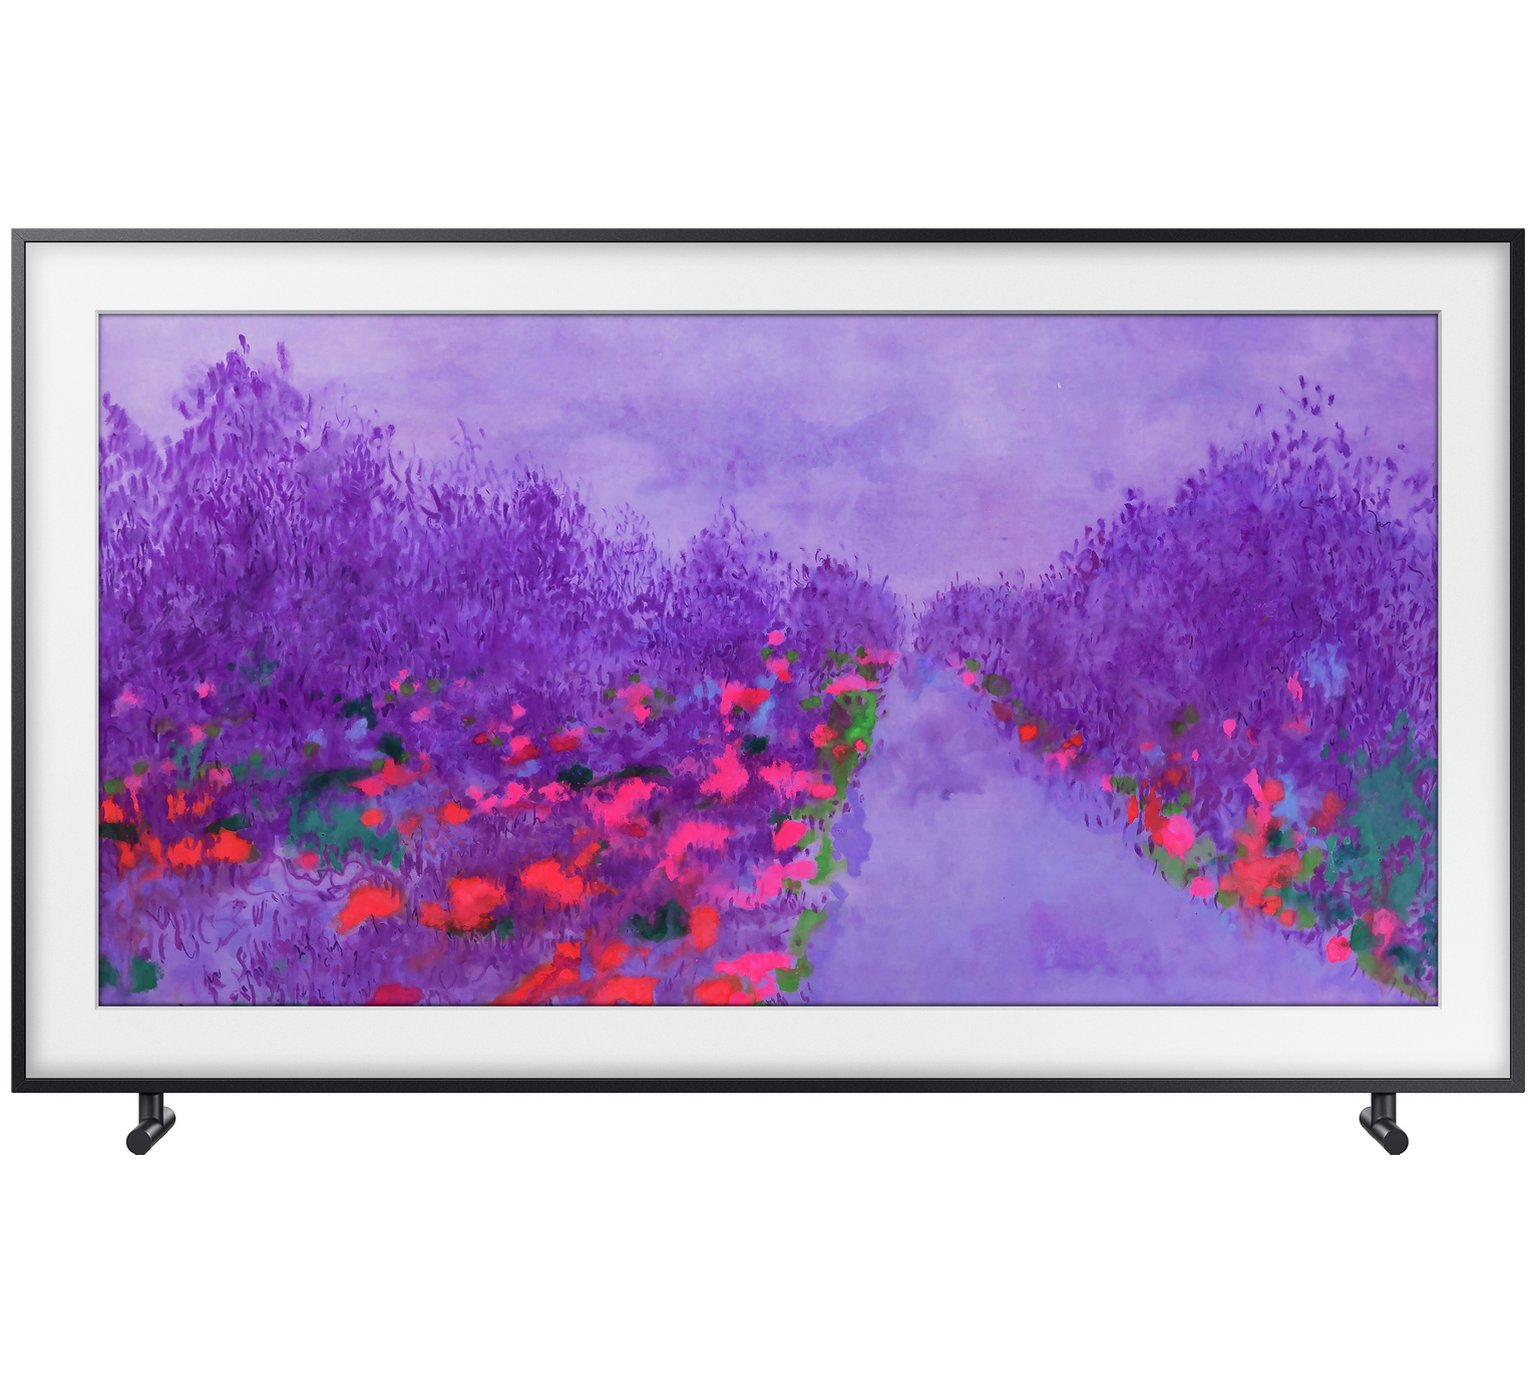 Samsung The Frame 43 Inch Art Mode Smart 4K UHD TV with HDR